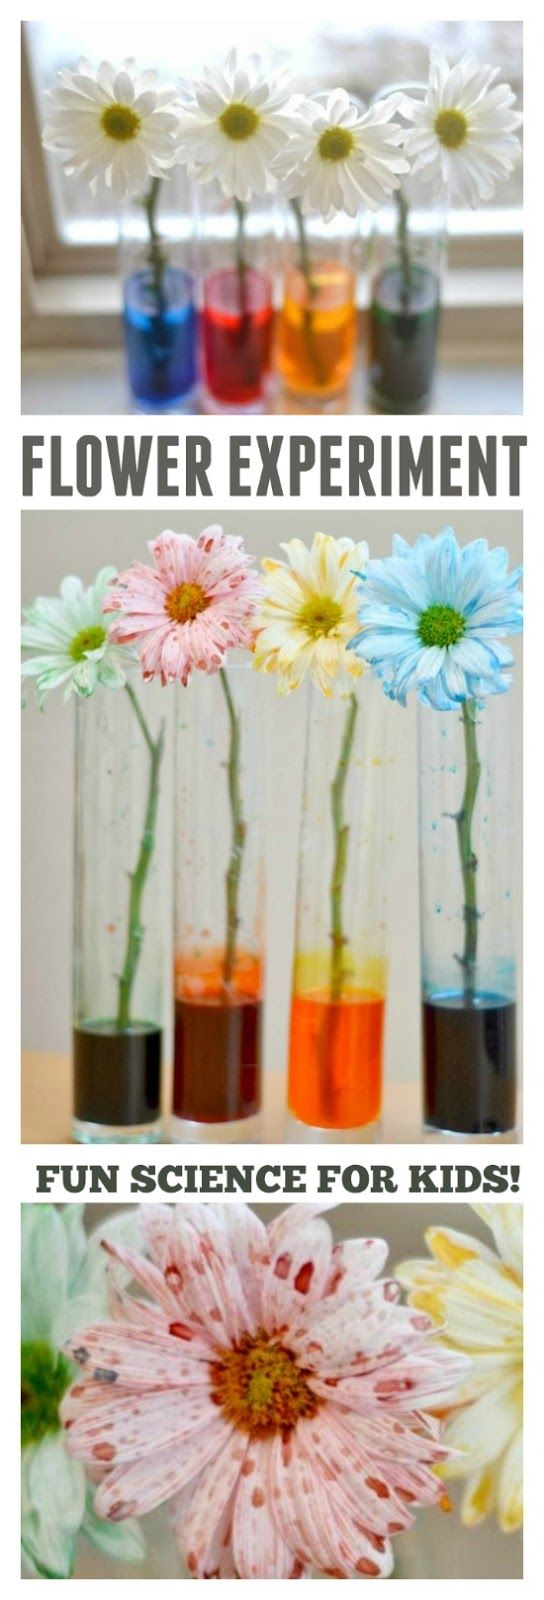 FLOWER EXPERIMENT FOR KIDS- fun science! (Cool Kids Experiments)